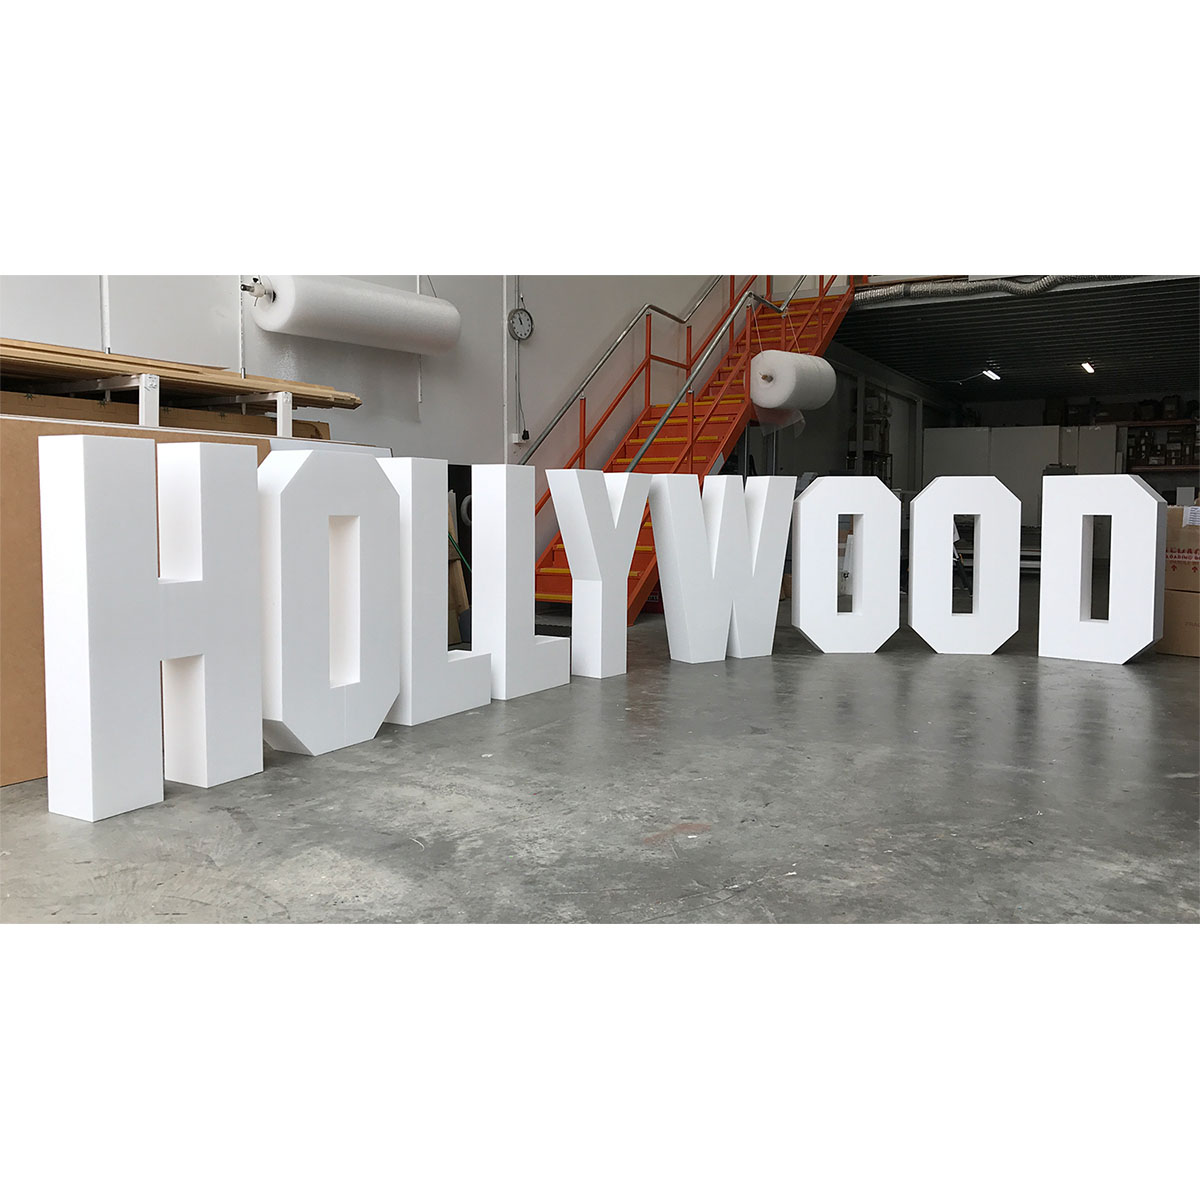 Hollywood foam letter signage